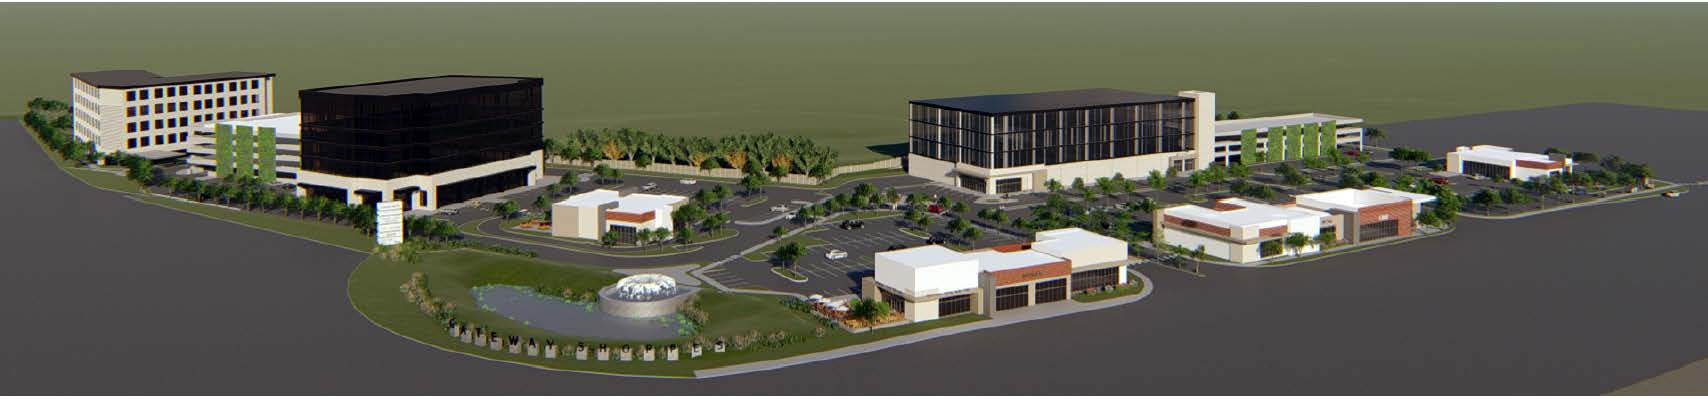 Olivette Gateway Development Slide in JPEG Format